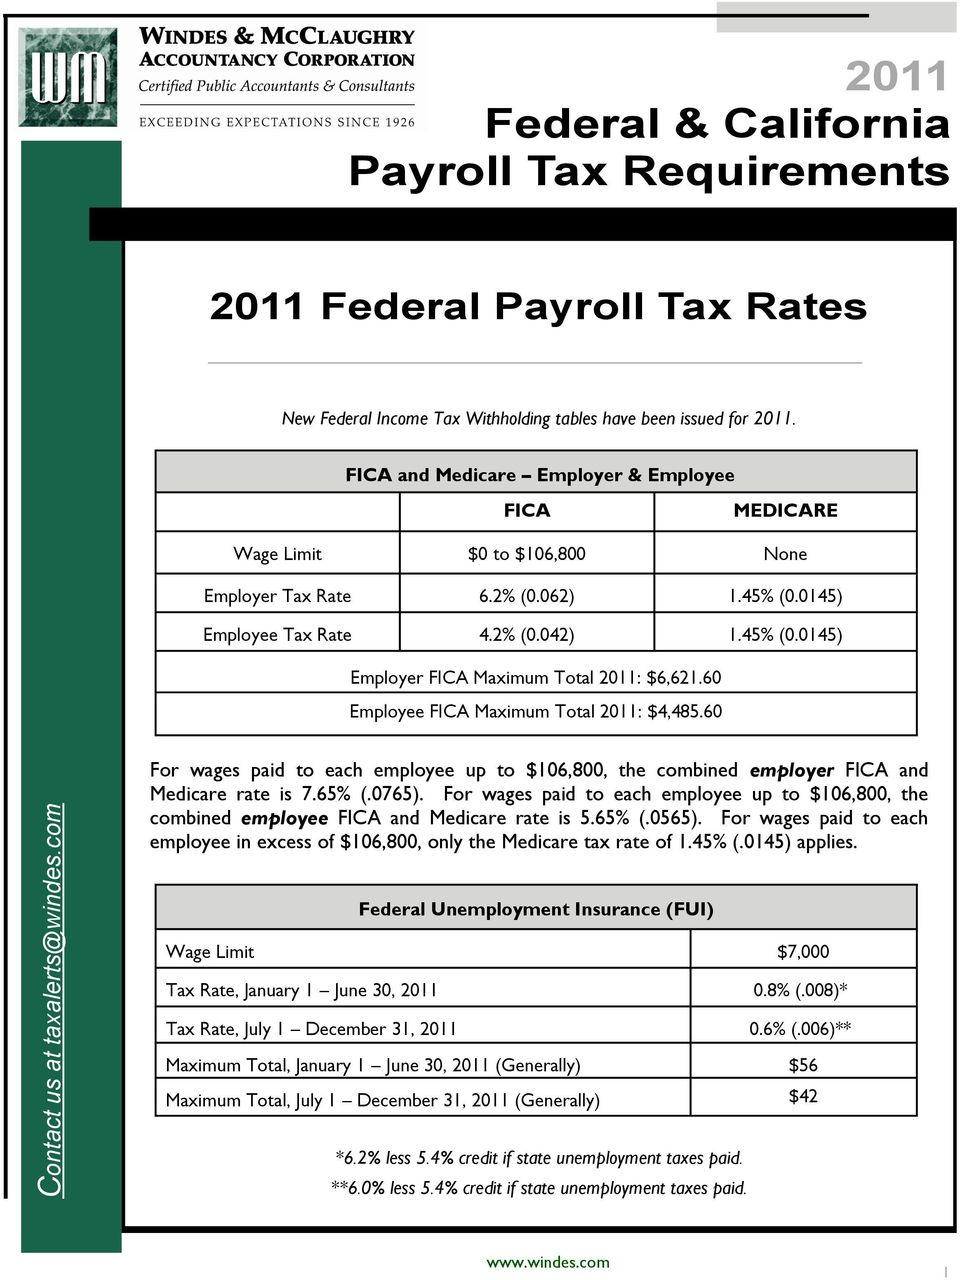 Superb 2011 Federal California Payroll Tax Requirements Pdf Download Free Architecture Designs Viewormadebymaigaardcom